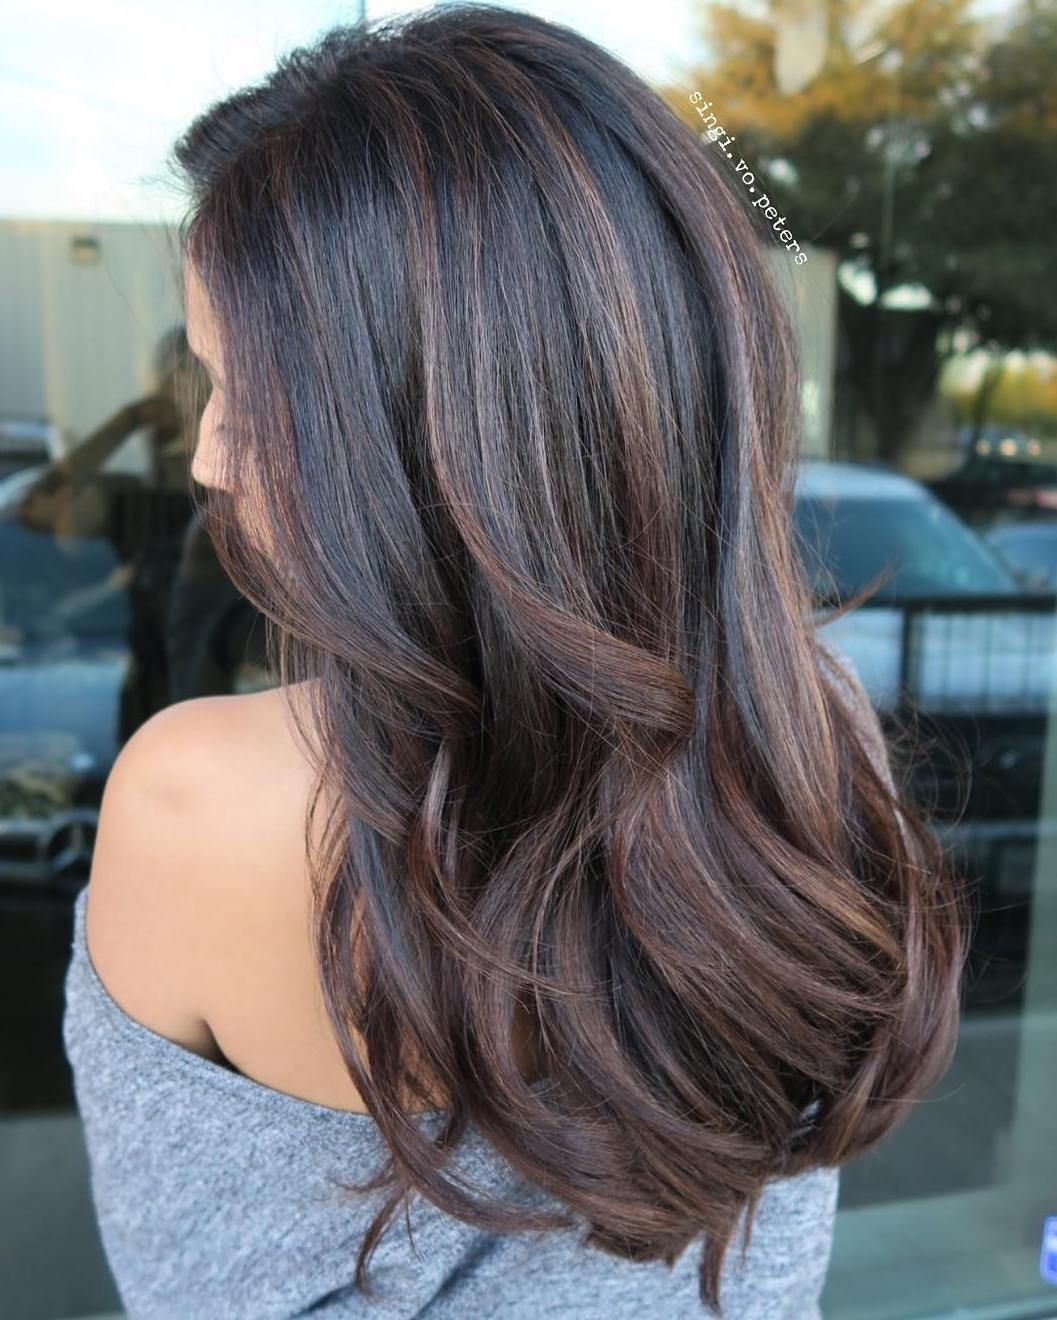 Coiffure Femme Mi Long Balayage 70 Flattering Balayage Hair Color Ideas For 2019 Cheveux